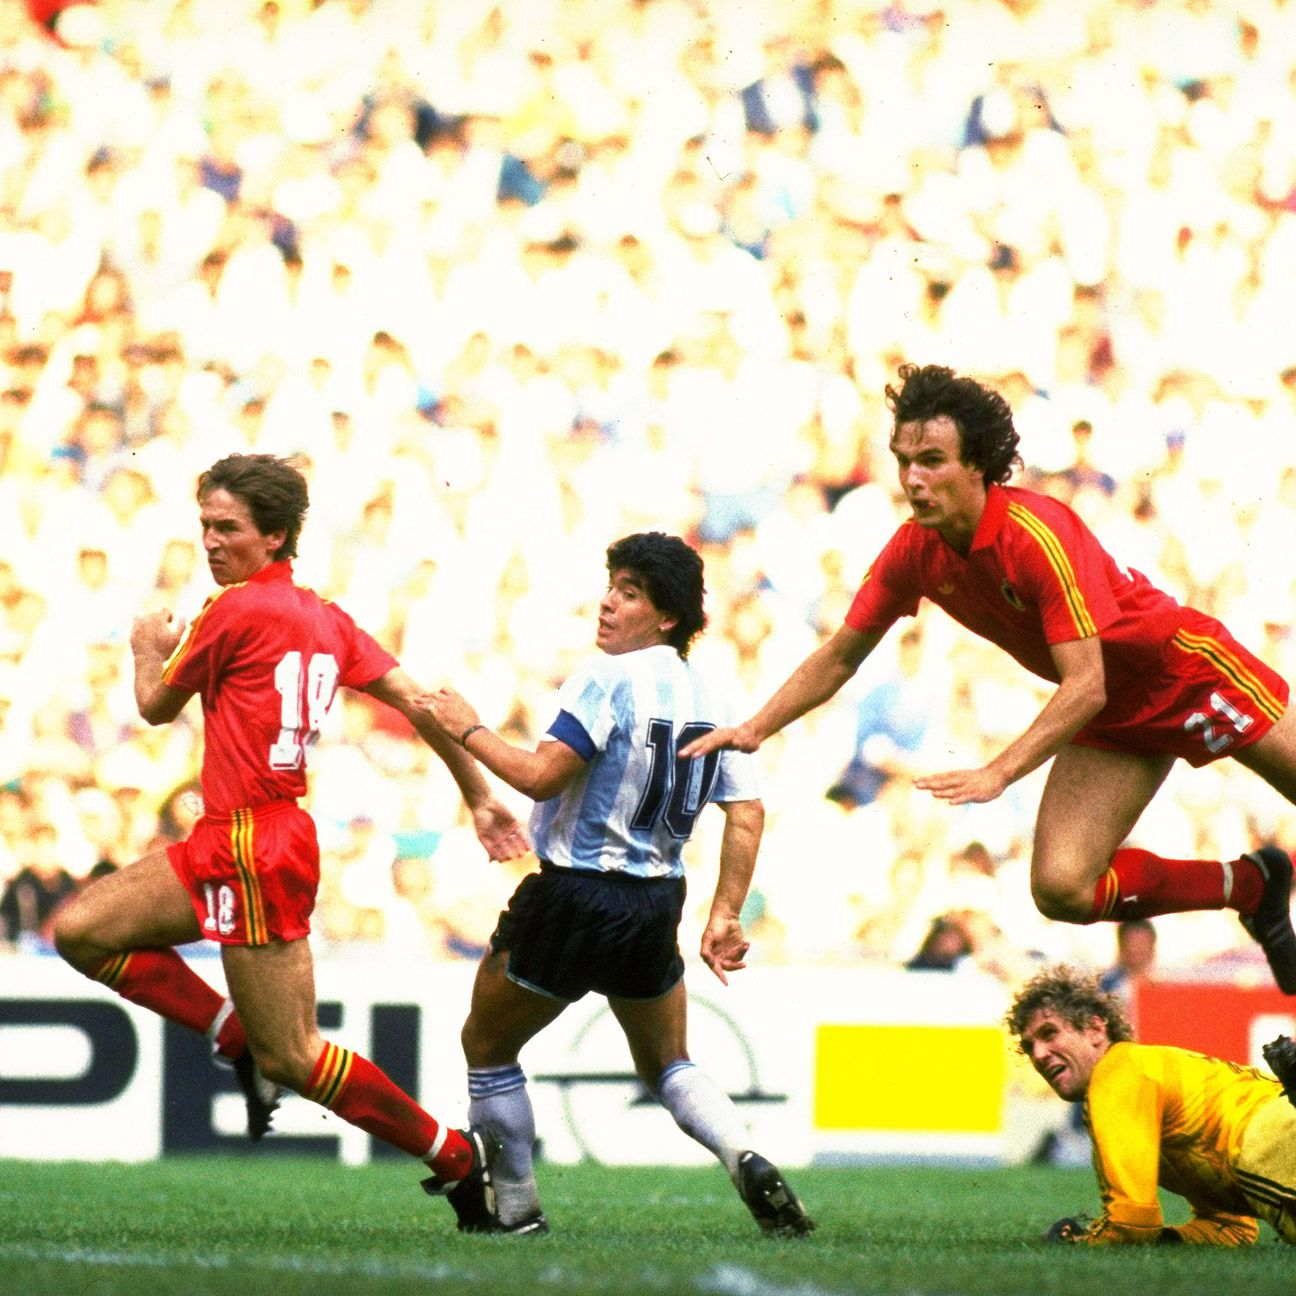 Belgium last squared off against Argentina in a World Cup in 1986 when they were defeated by a Diego Maradona-led Albiceleste.